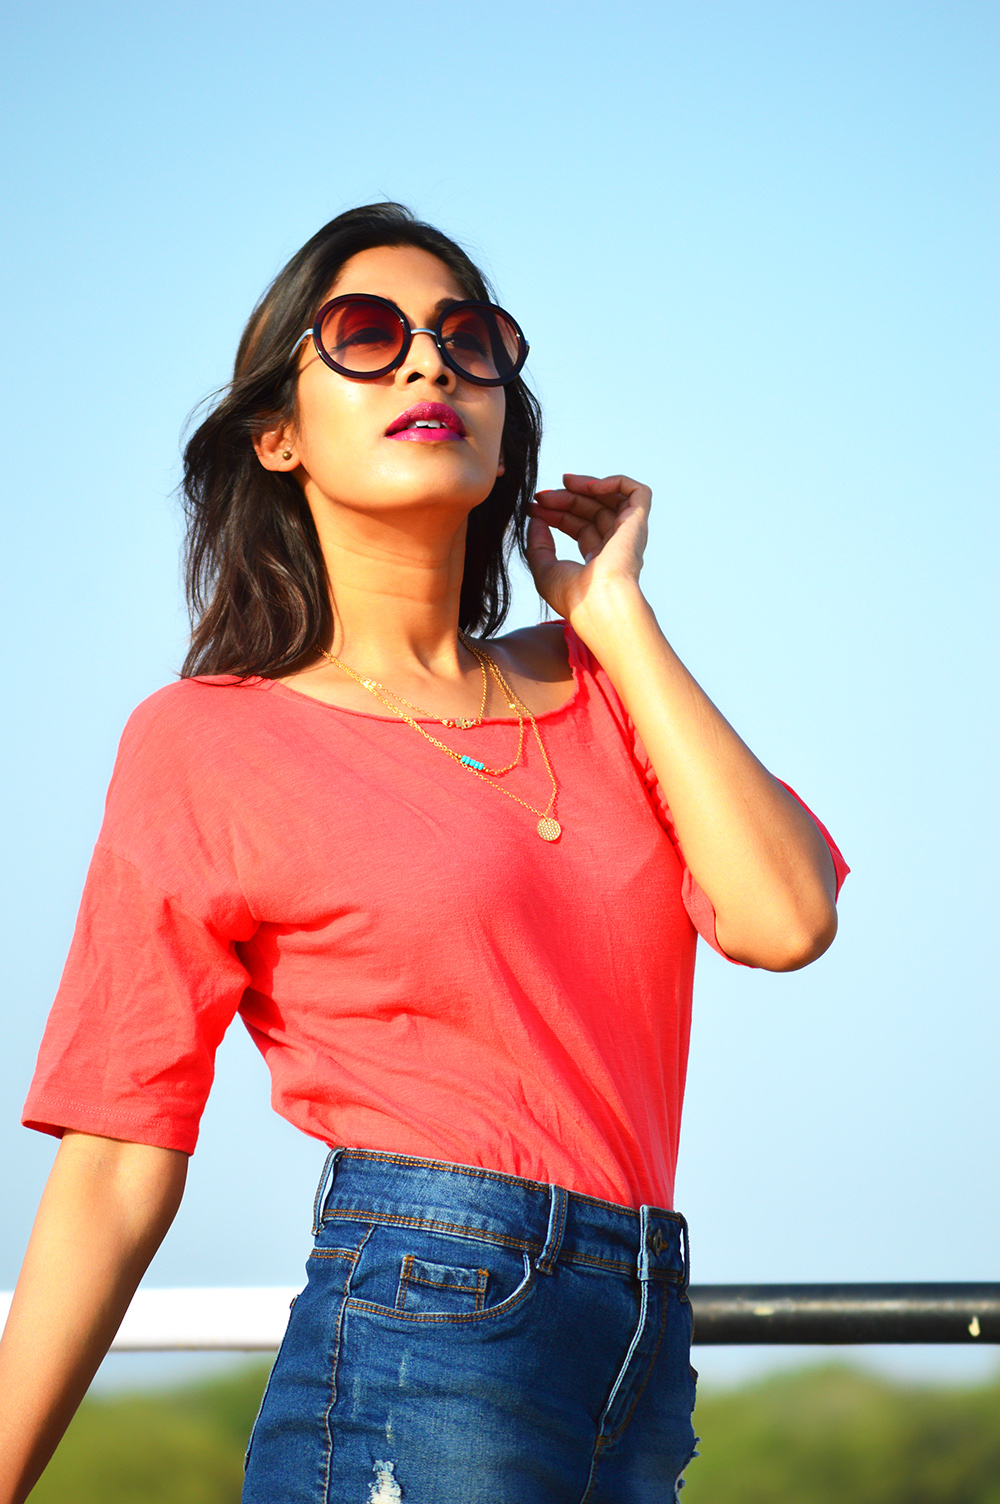 Fashion, Style, Fashion Photography, Street Style, Fashion Bloggers, Indian Fashion Bloggers, Denim Style, Outfit Of the Day, Retro Sunglasses, Lifestyle Blog- 6